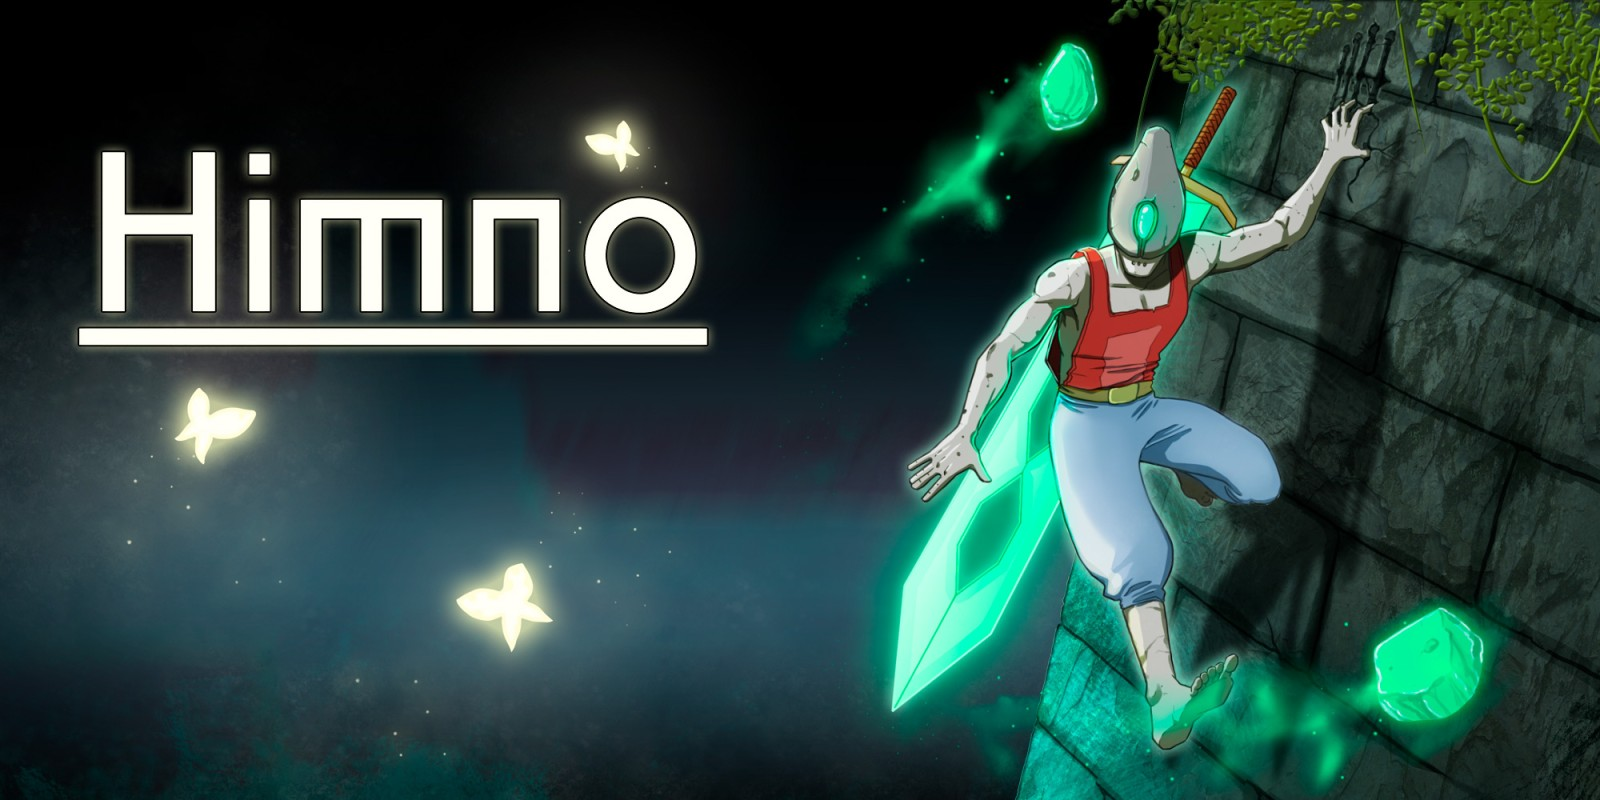 Himno hitting the Switch eShop this week